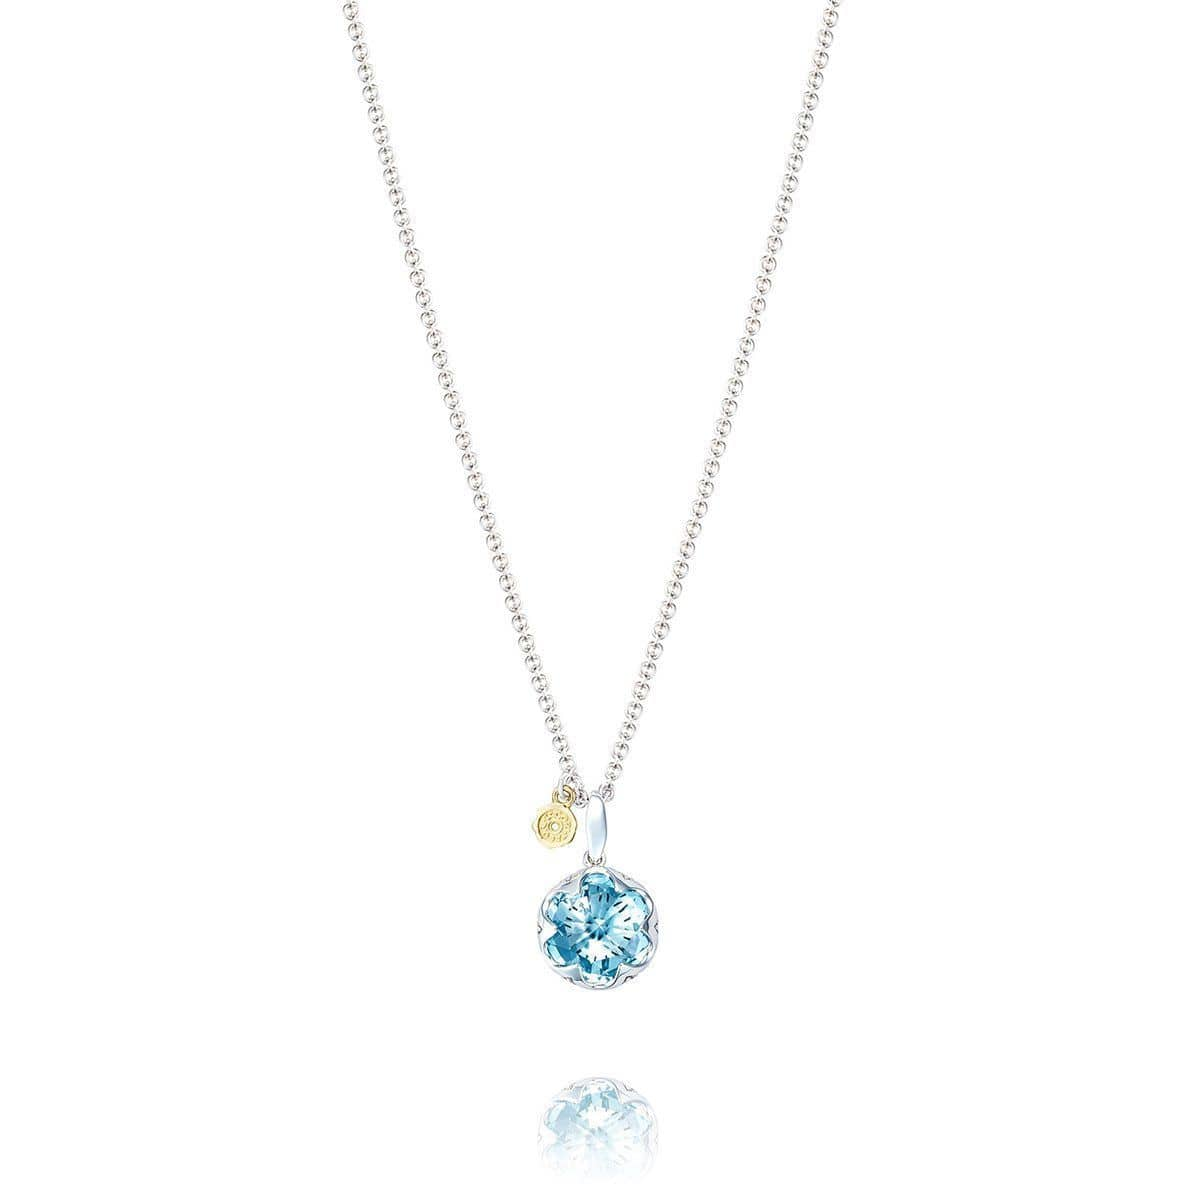 Sky Blue Topaz Necklace - SN19902-Tacori-Renee Taylor Gallery